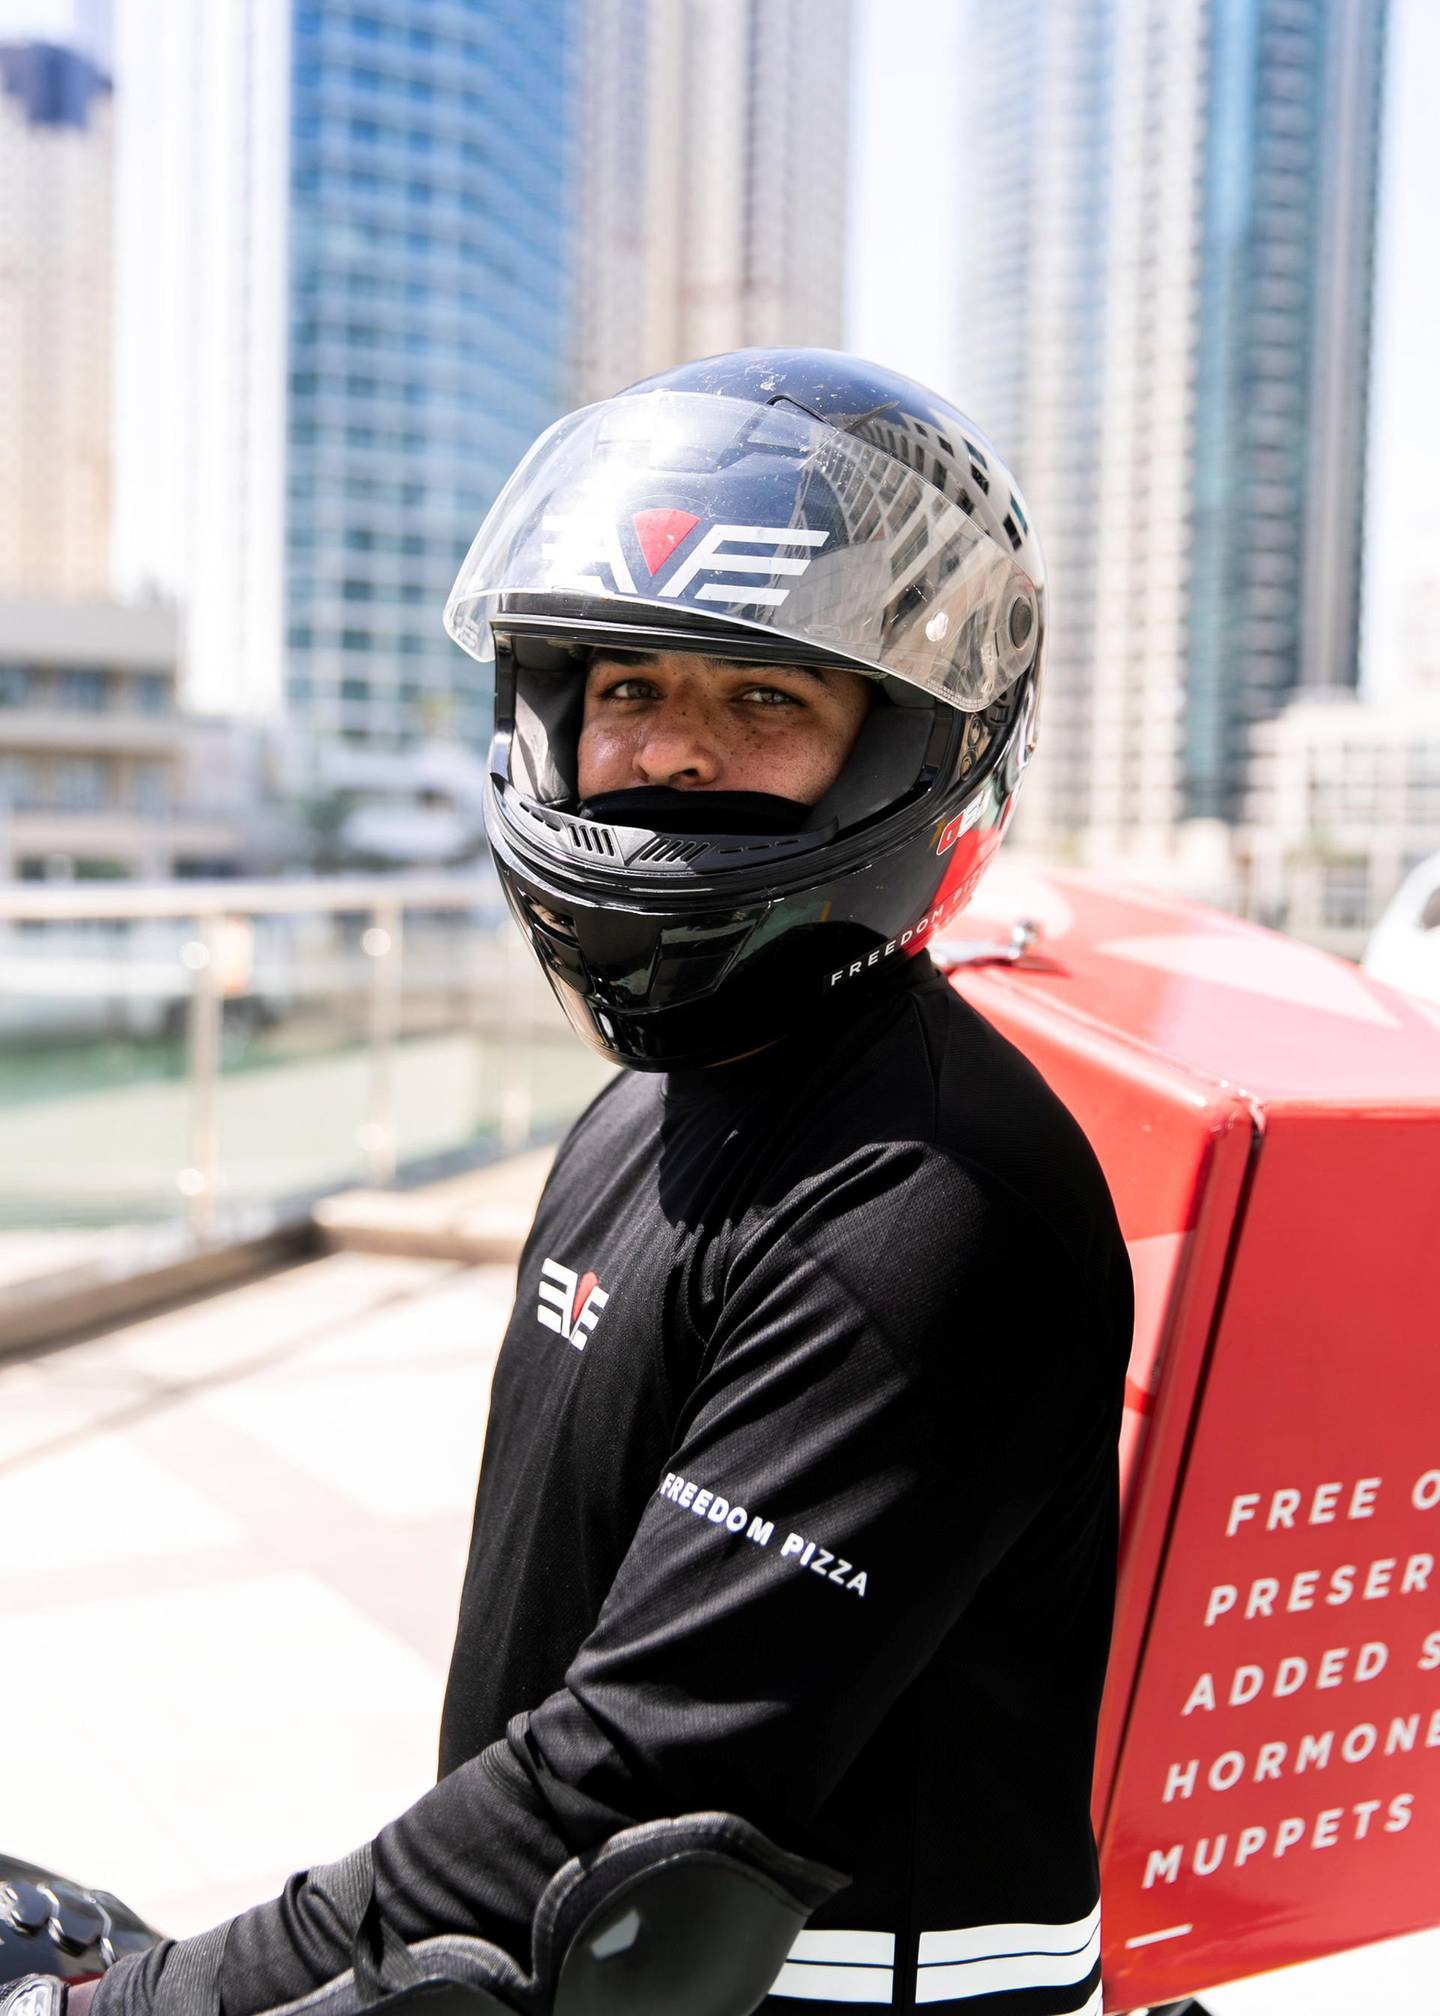 DUBAI, UNITED ARAB EMIRATES. 14 MAY 2020. Rakesh Kumar, bike delivery rider at Freedom Pizza(Photo: Reem Mohammed/The National)Reporter:Section: